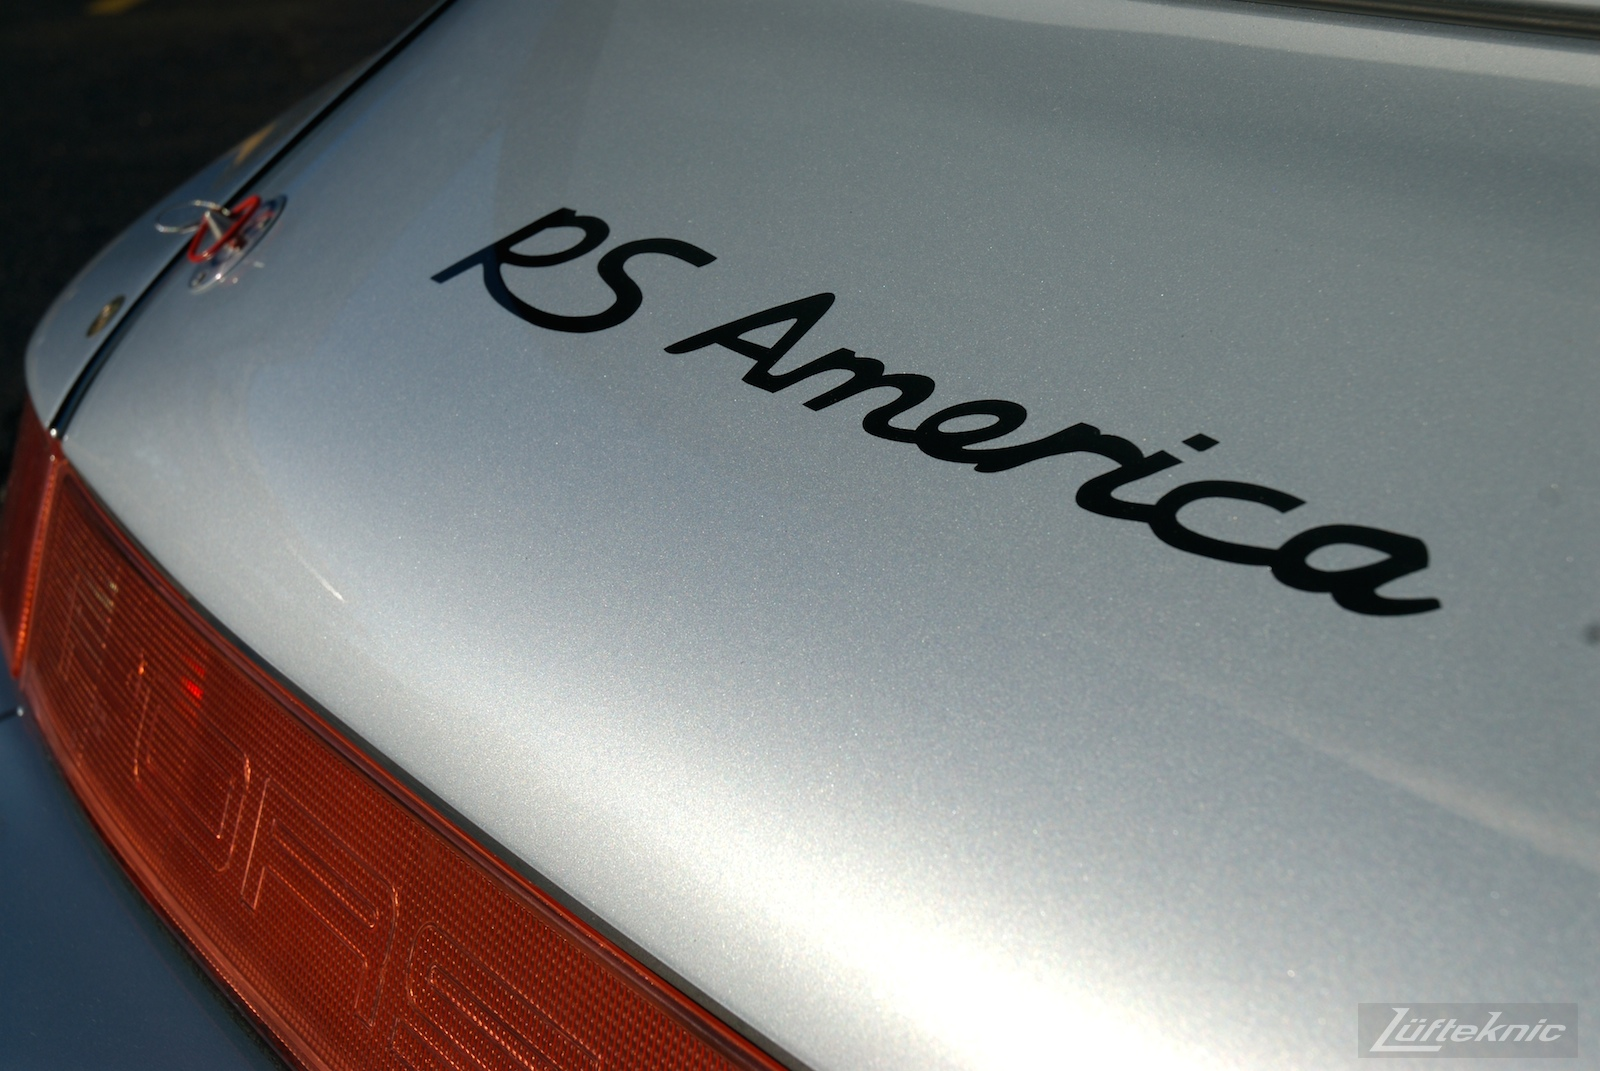 RS America graphics painted onto the rear decklid.